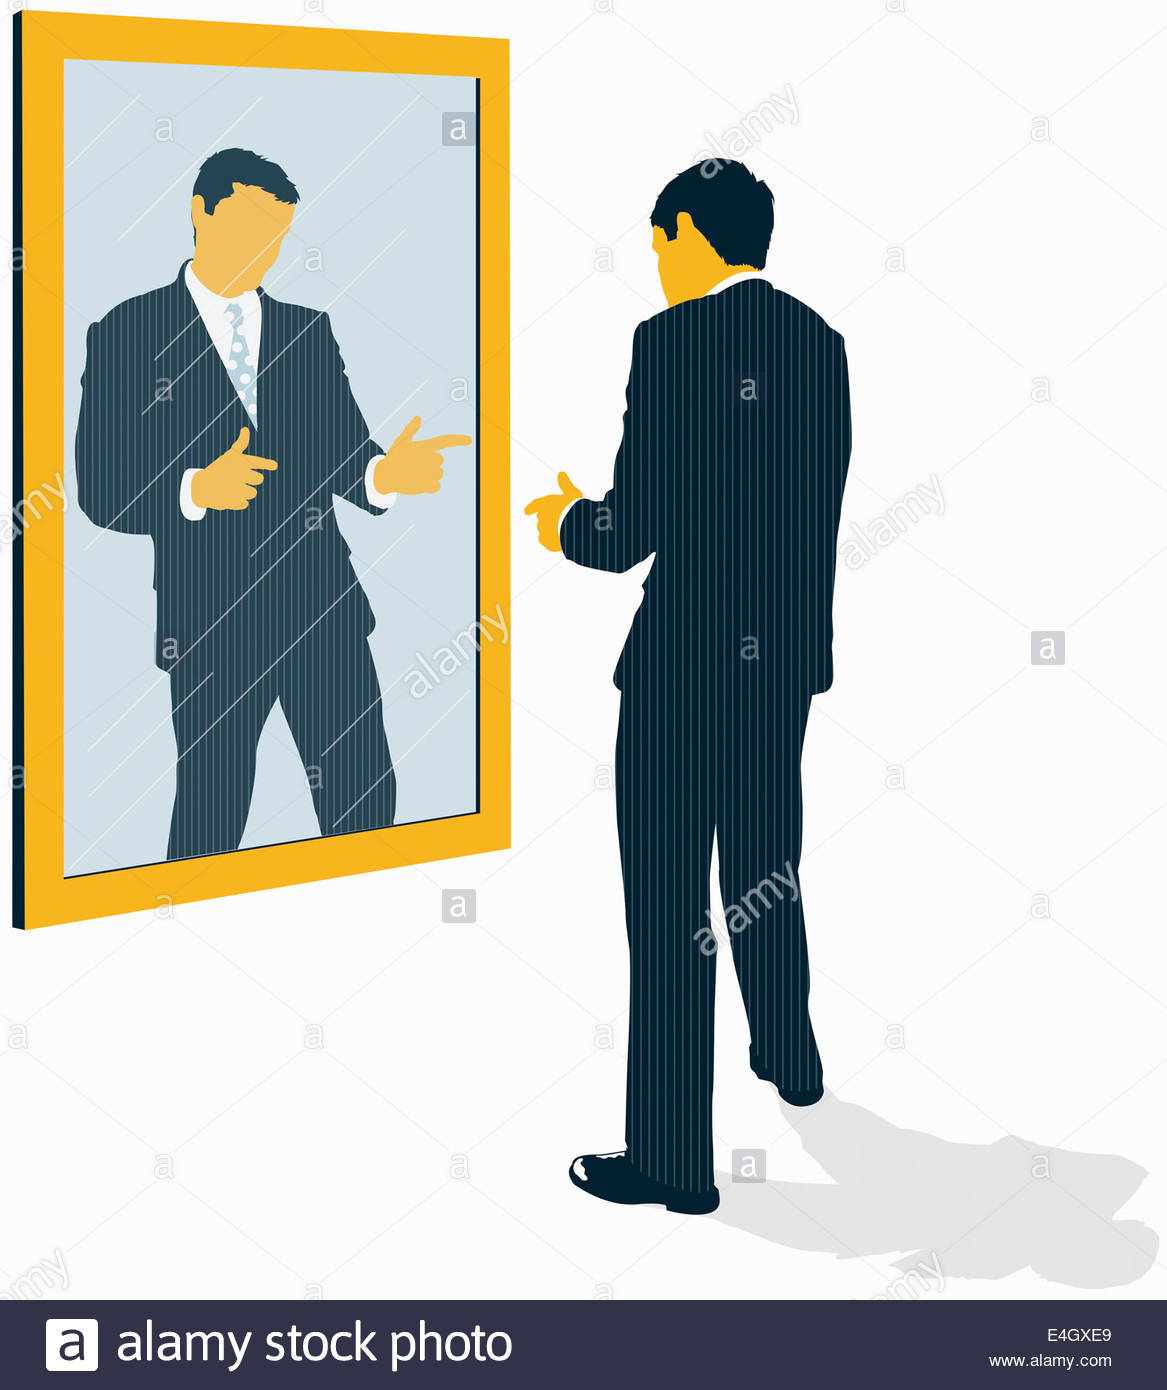 Confident businessman looking at reflection and pointing in mirror - Stock Image